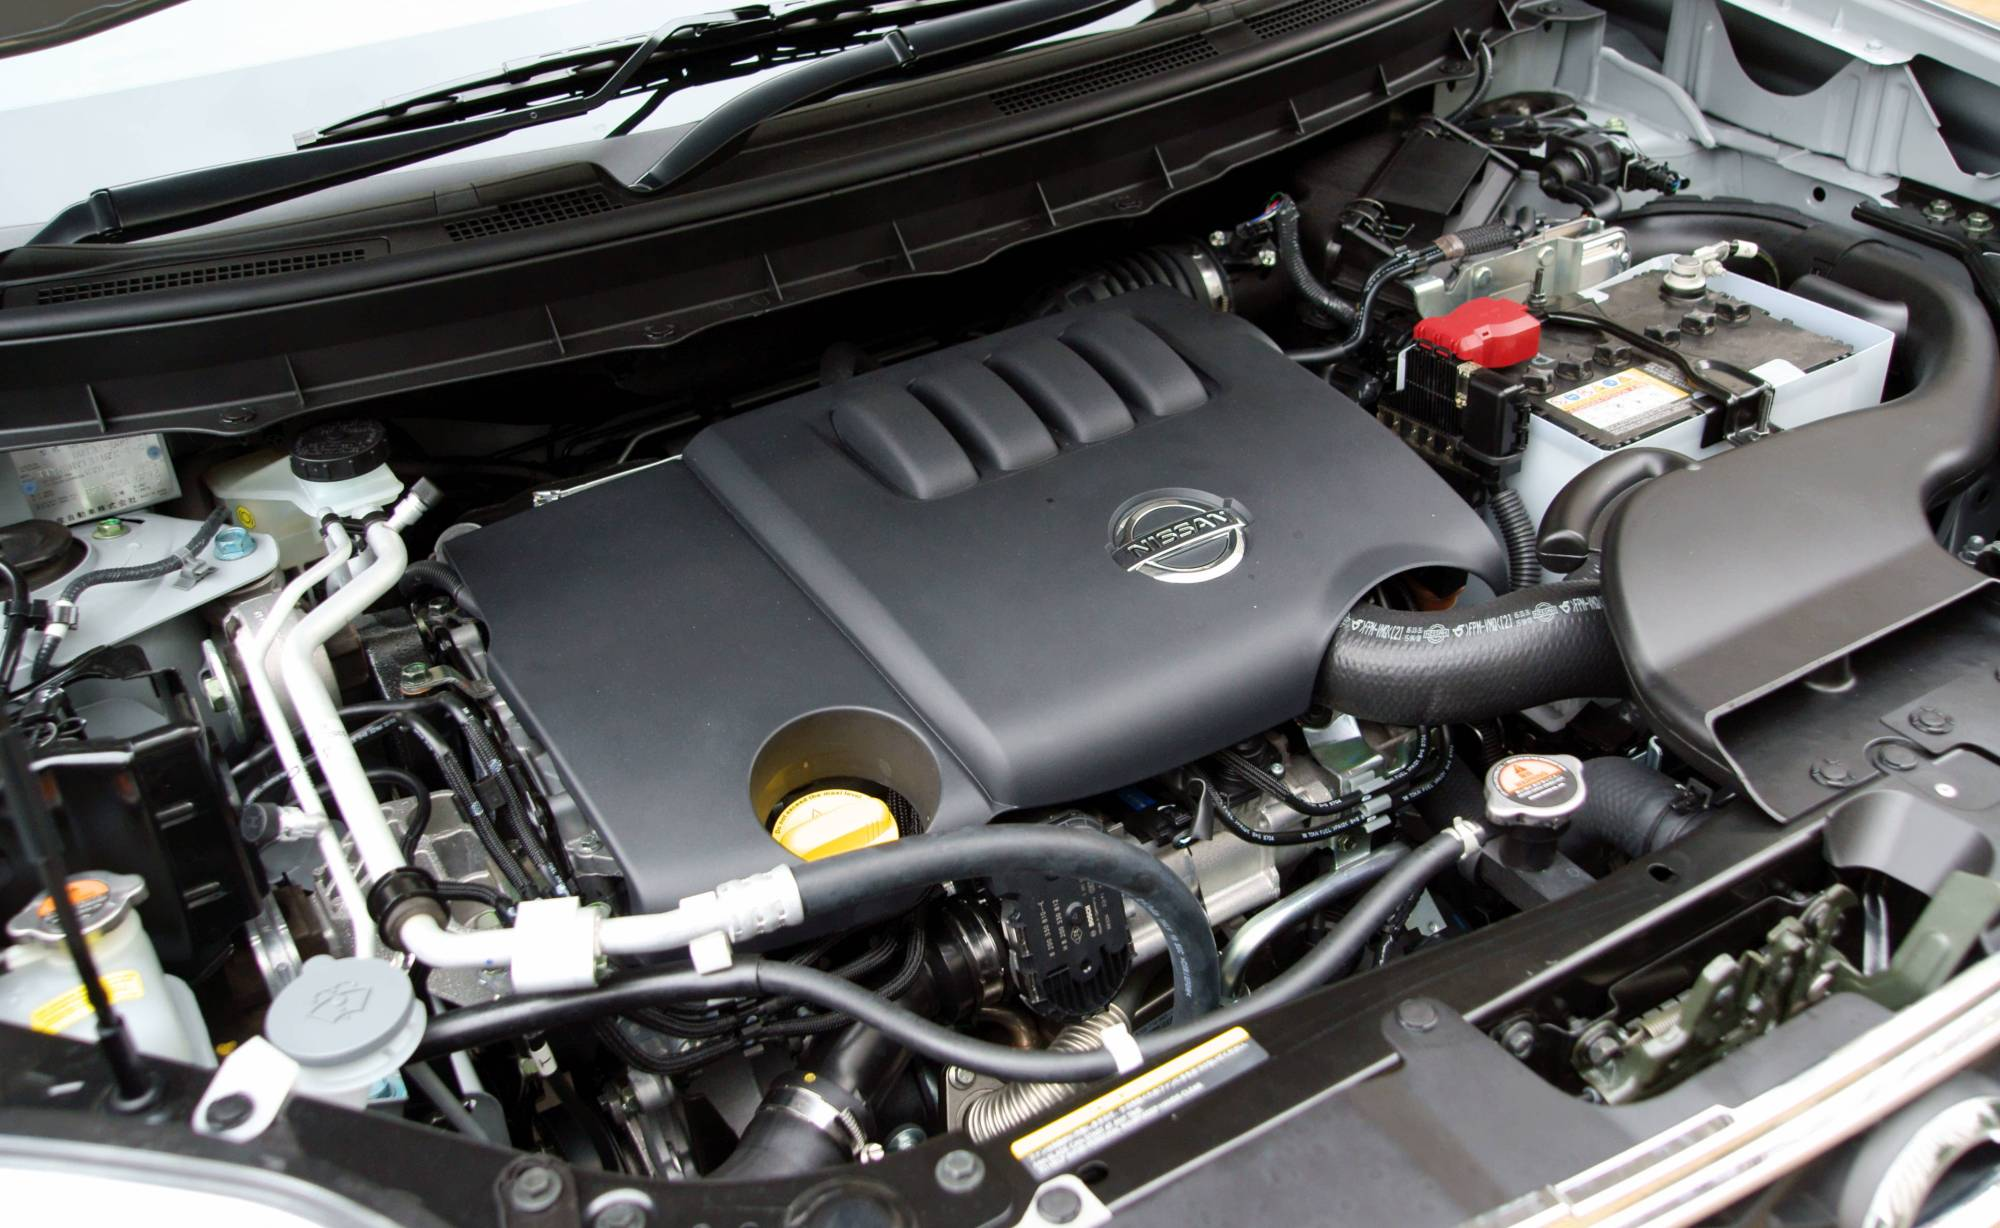 hight resolution of file nissan m9r engine 02 jpg